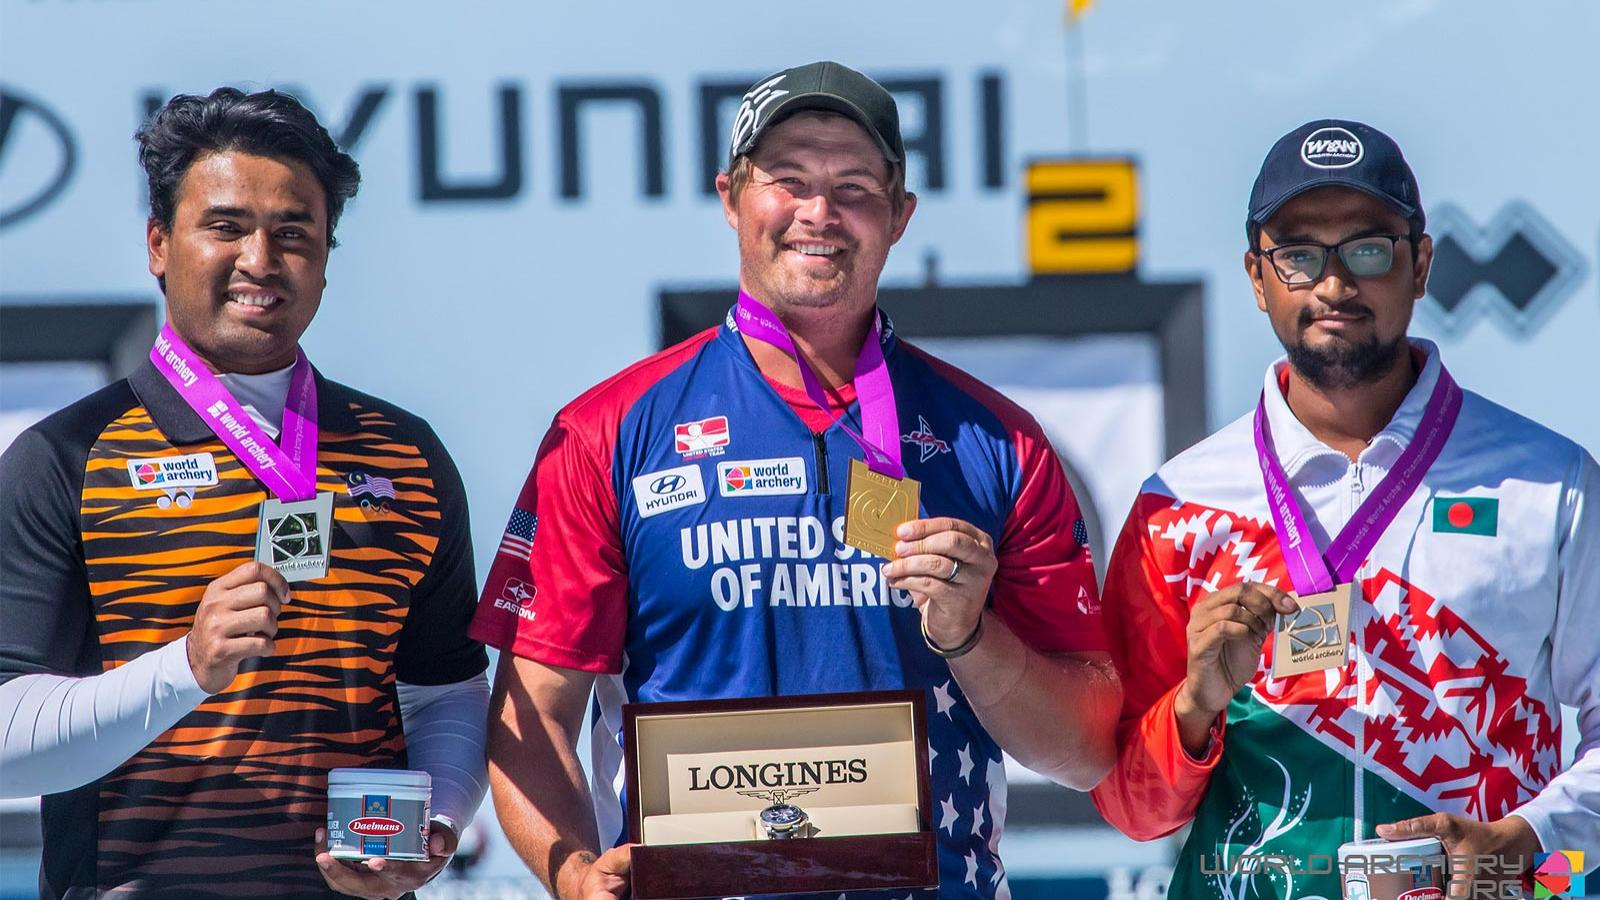 Archery World Championships; Archery; 2019